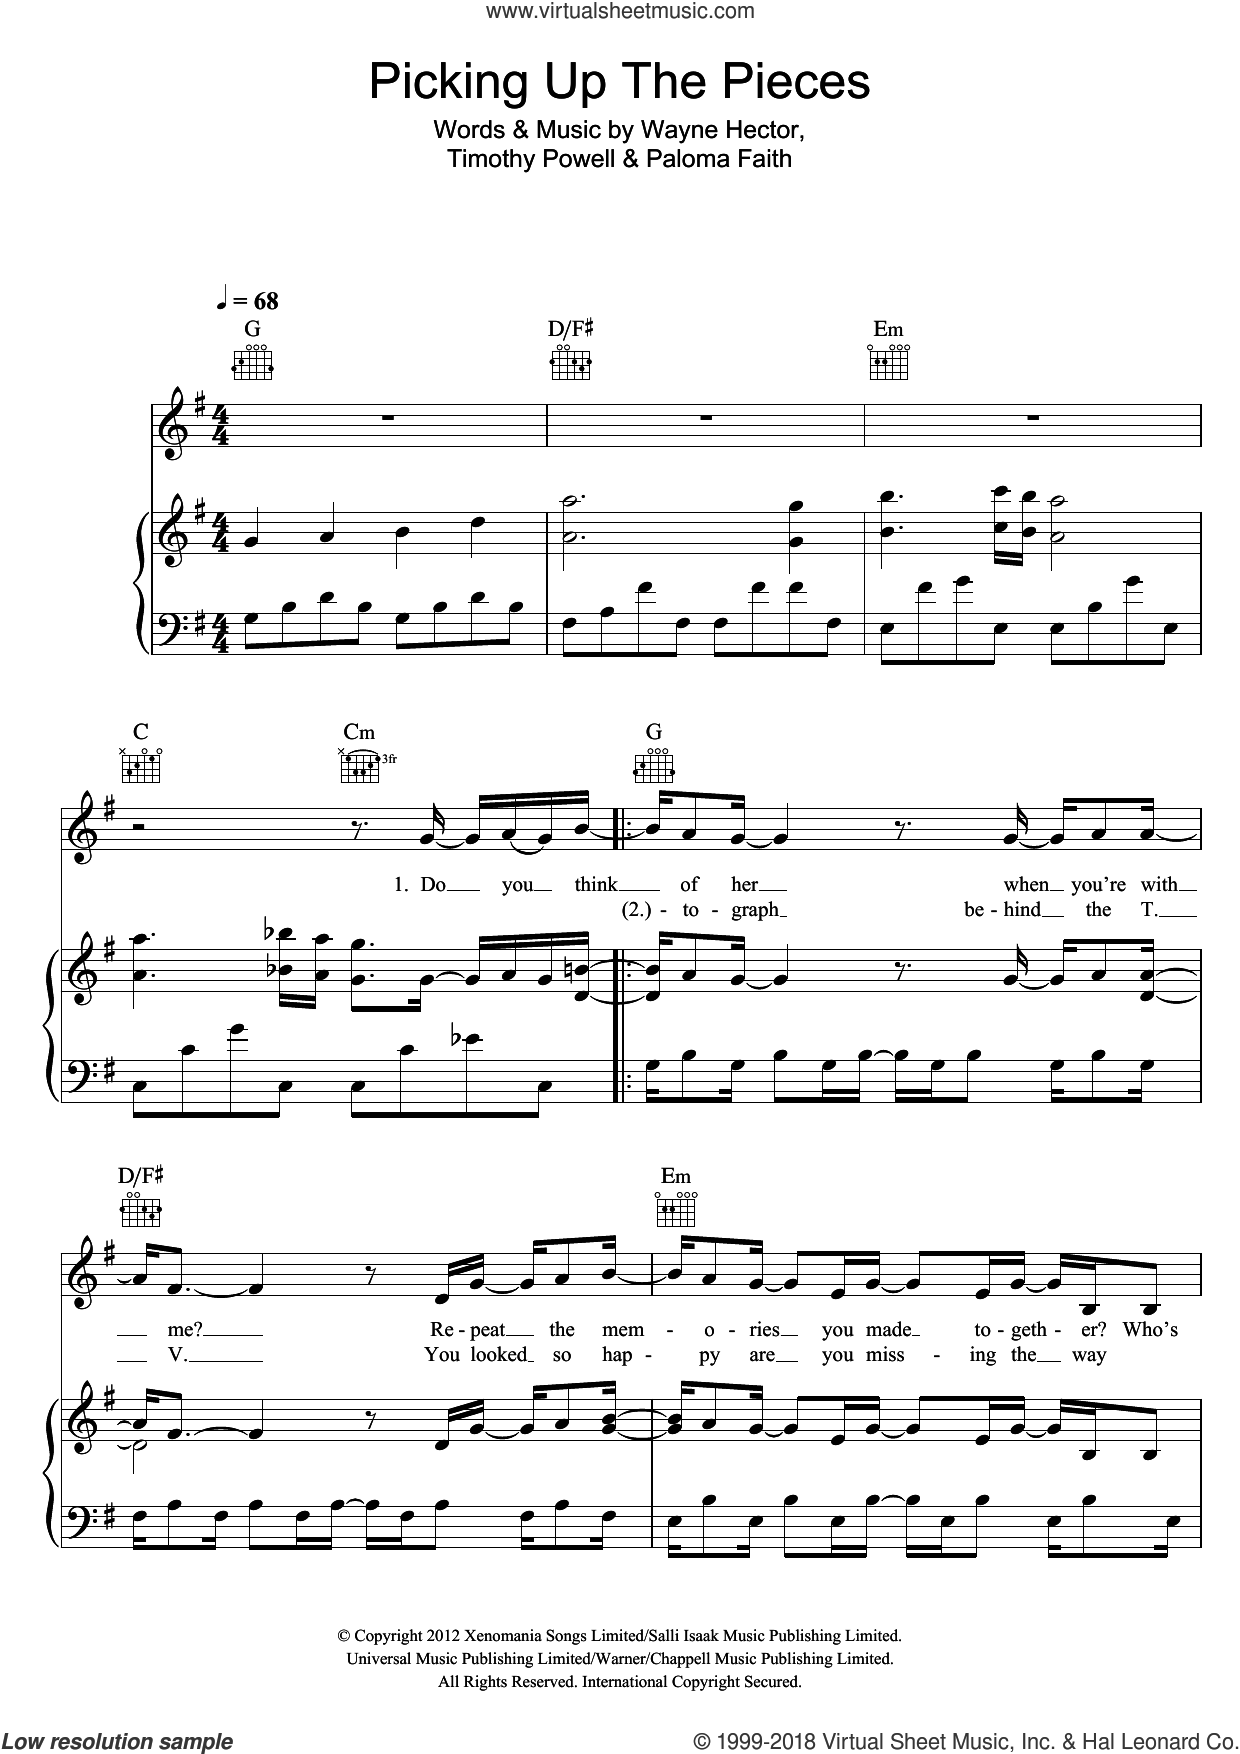 Picking Up The Pieces sheet music for voice, piano or guitar by Paloma Faith, Timothy Powell and Wayne Hector, intermediate. Score Image Preview.